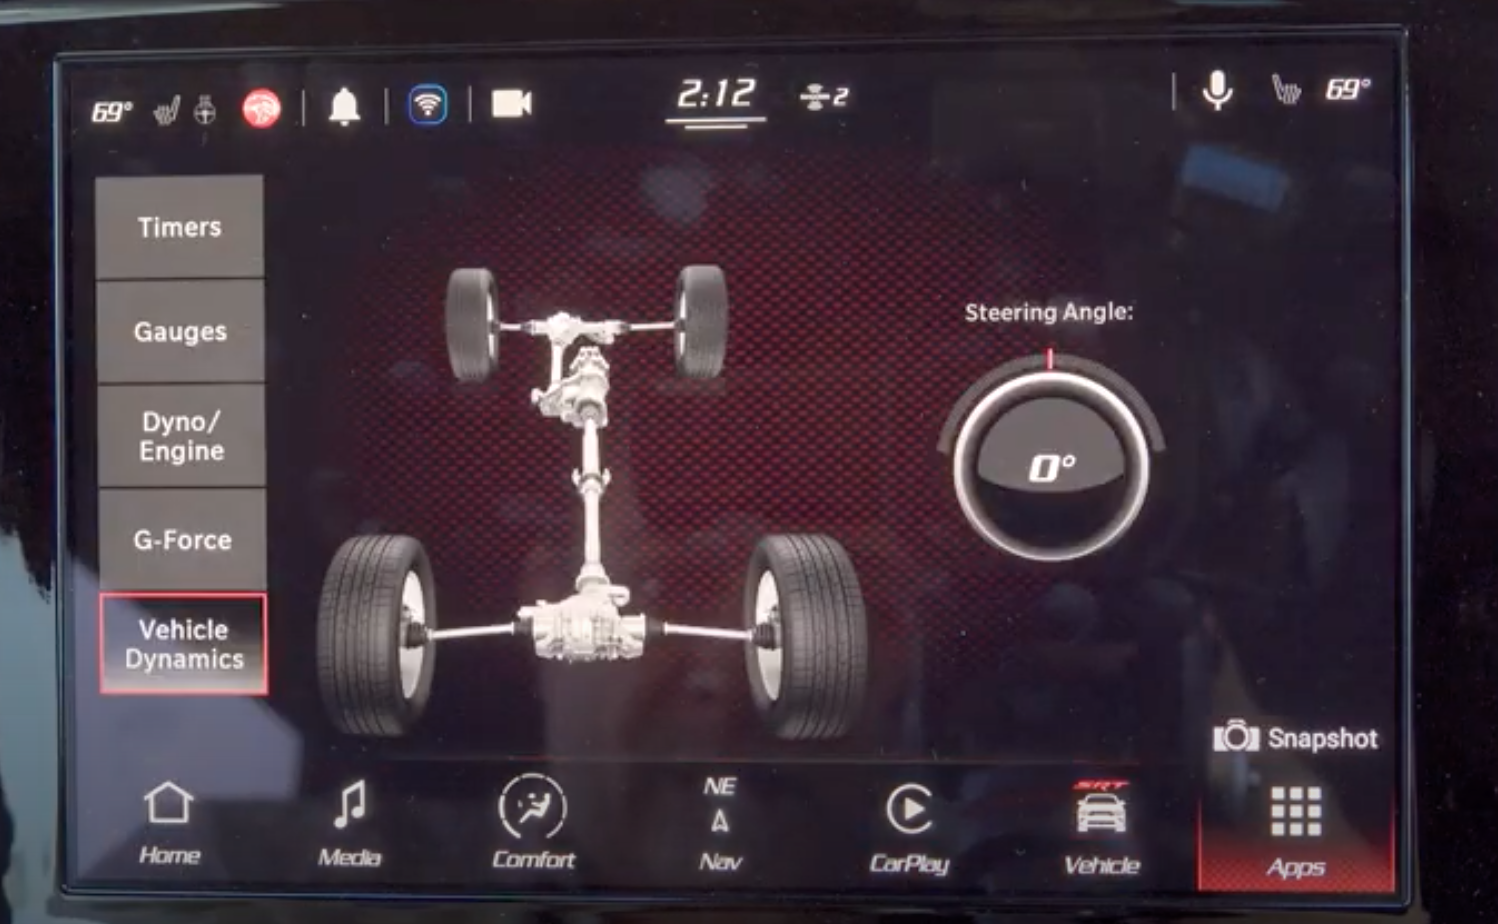 Vehicle dynamics page with illustration of the tires and the steering angle information